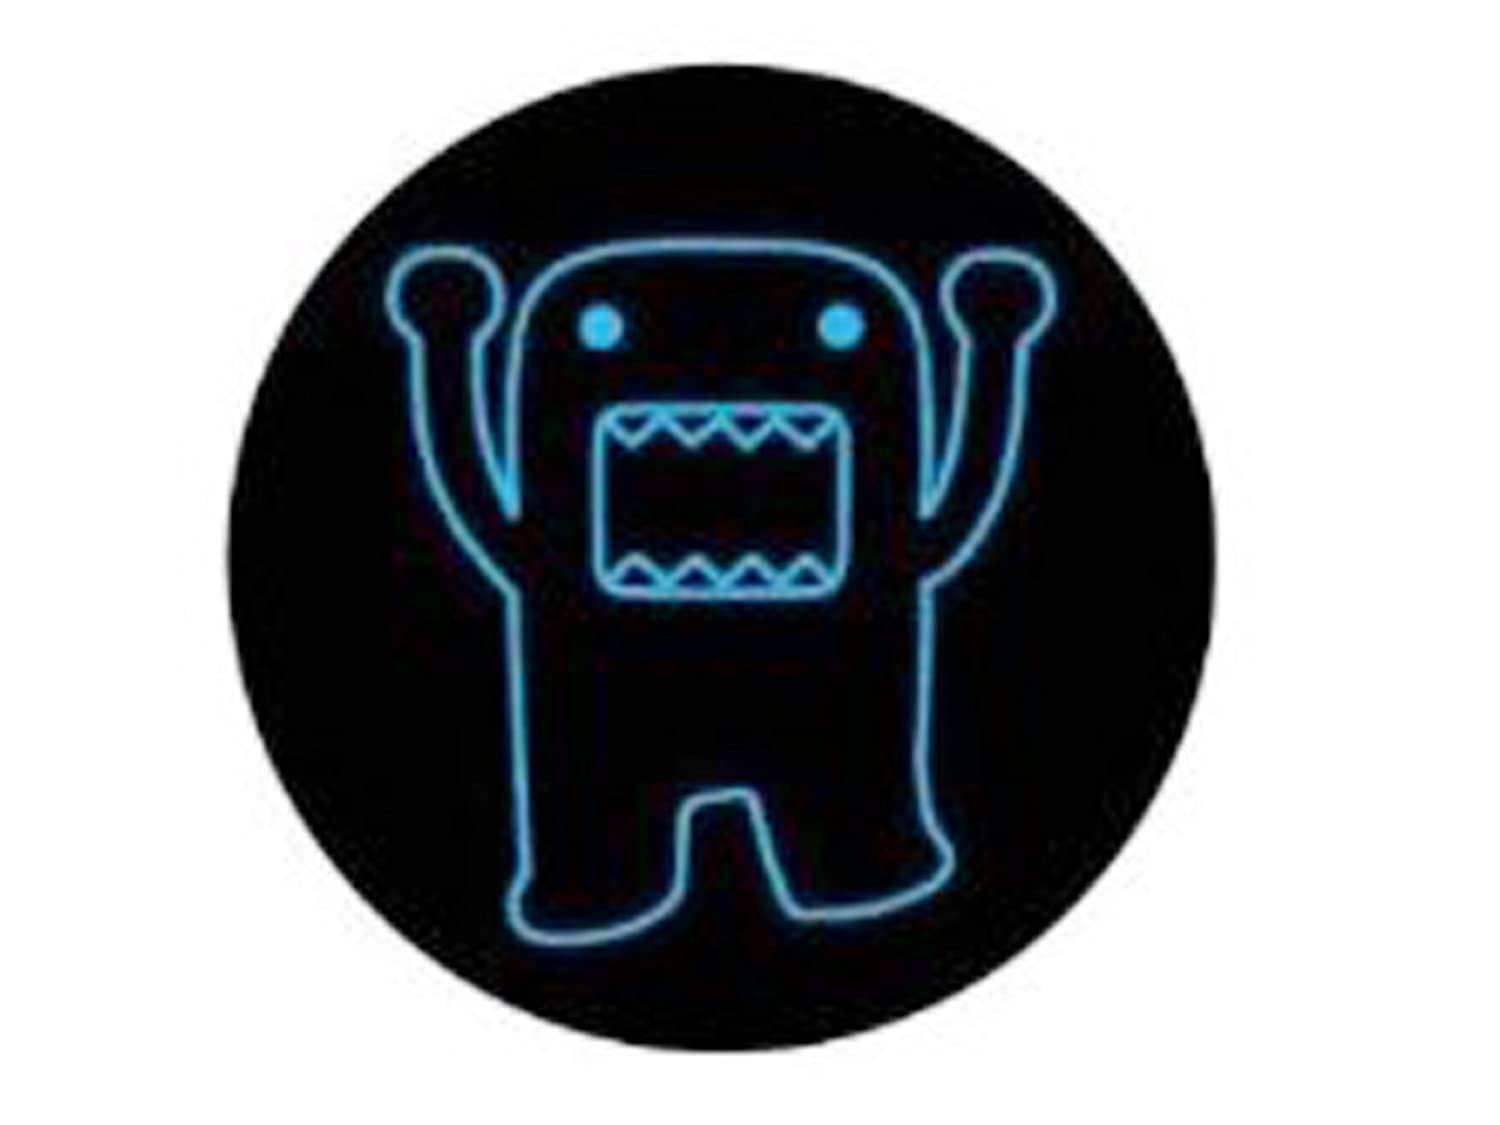 "Domo-Kun, Domo, 1.25"" X 1.25"", Officially Licensed - Button Schaltfläche- Blue Neon Colored Outline Childrens Anime TV Show Button Schaltfläche Officially Licensed & Trademarked Products"